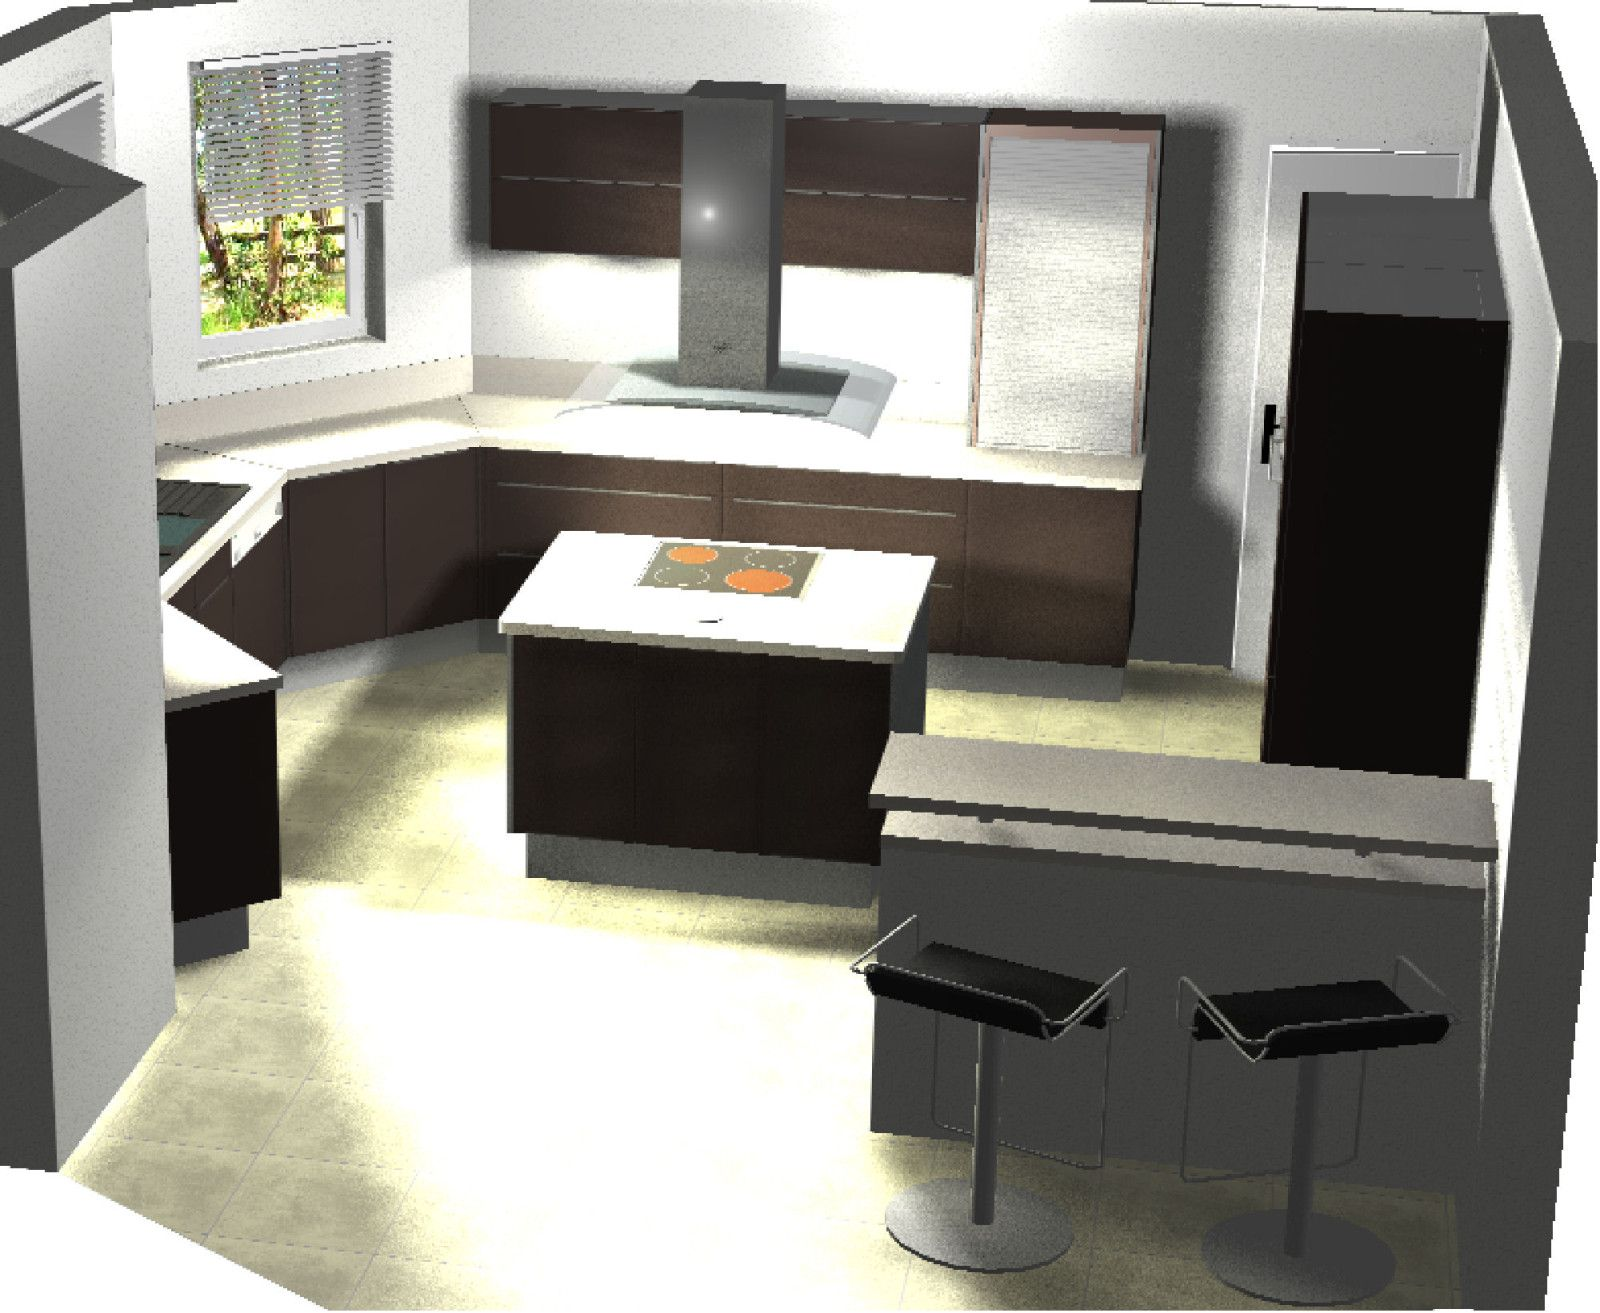 album 4 cuisine perene la maison de m l et mat. Black Bedroom Furniture Sets. Home Design Ideas